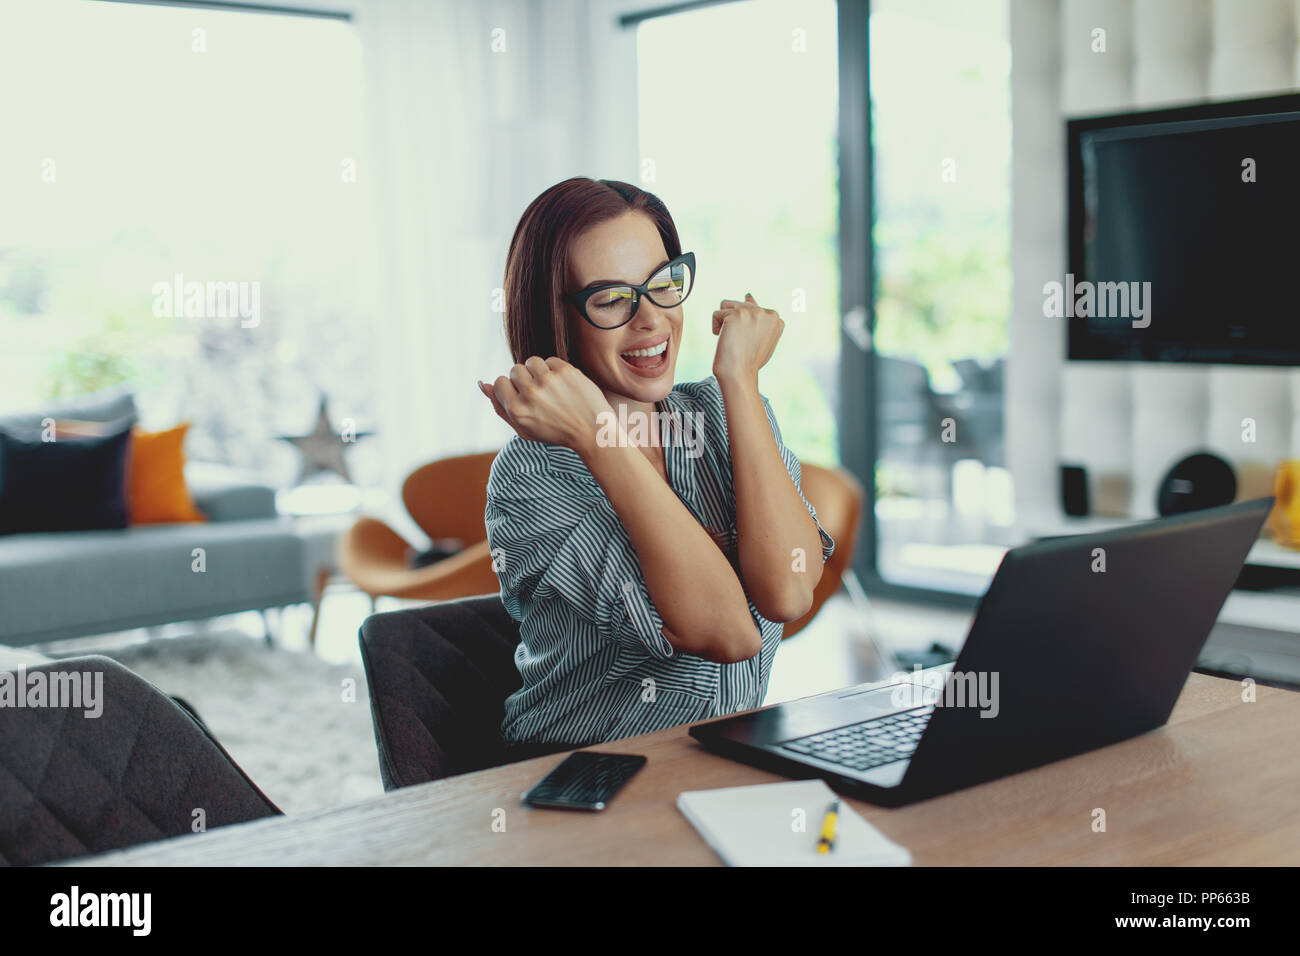 Young lucky succeessful woman euphoria, passing application or examination at laptop, indoors - Stock Image